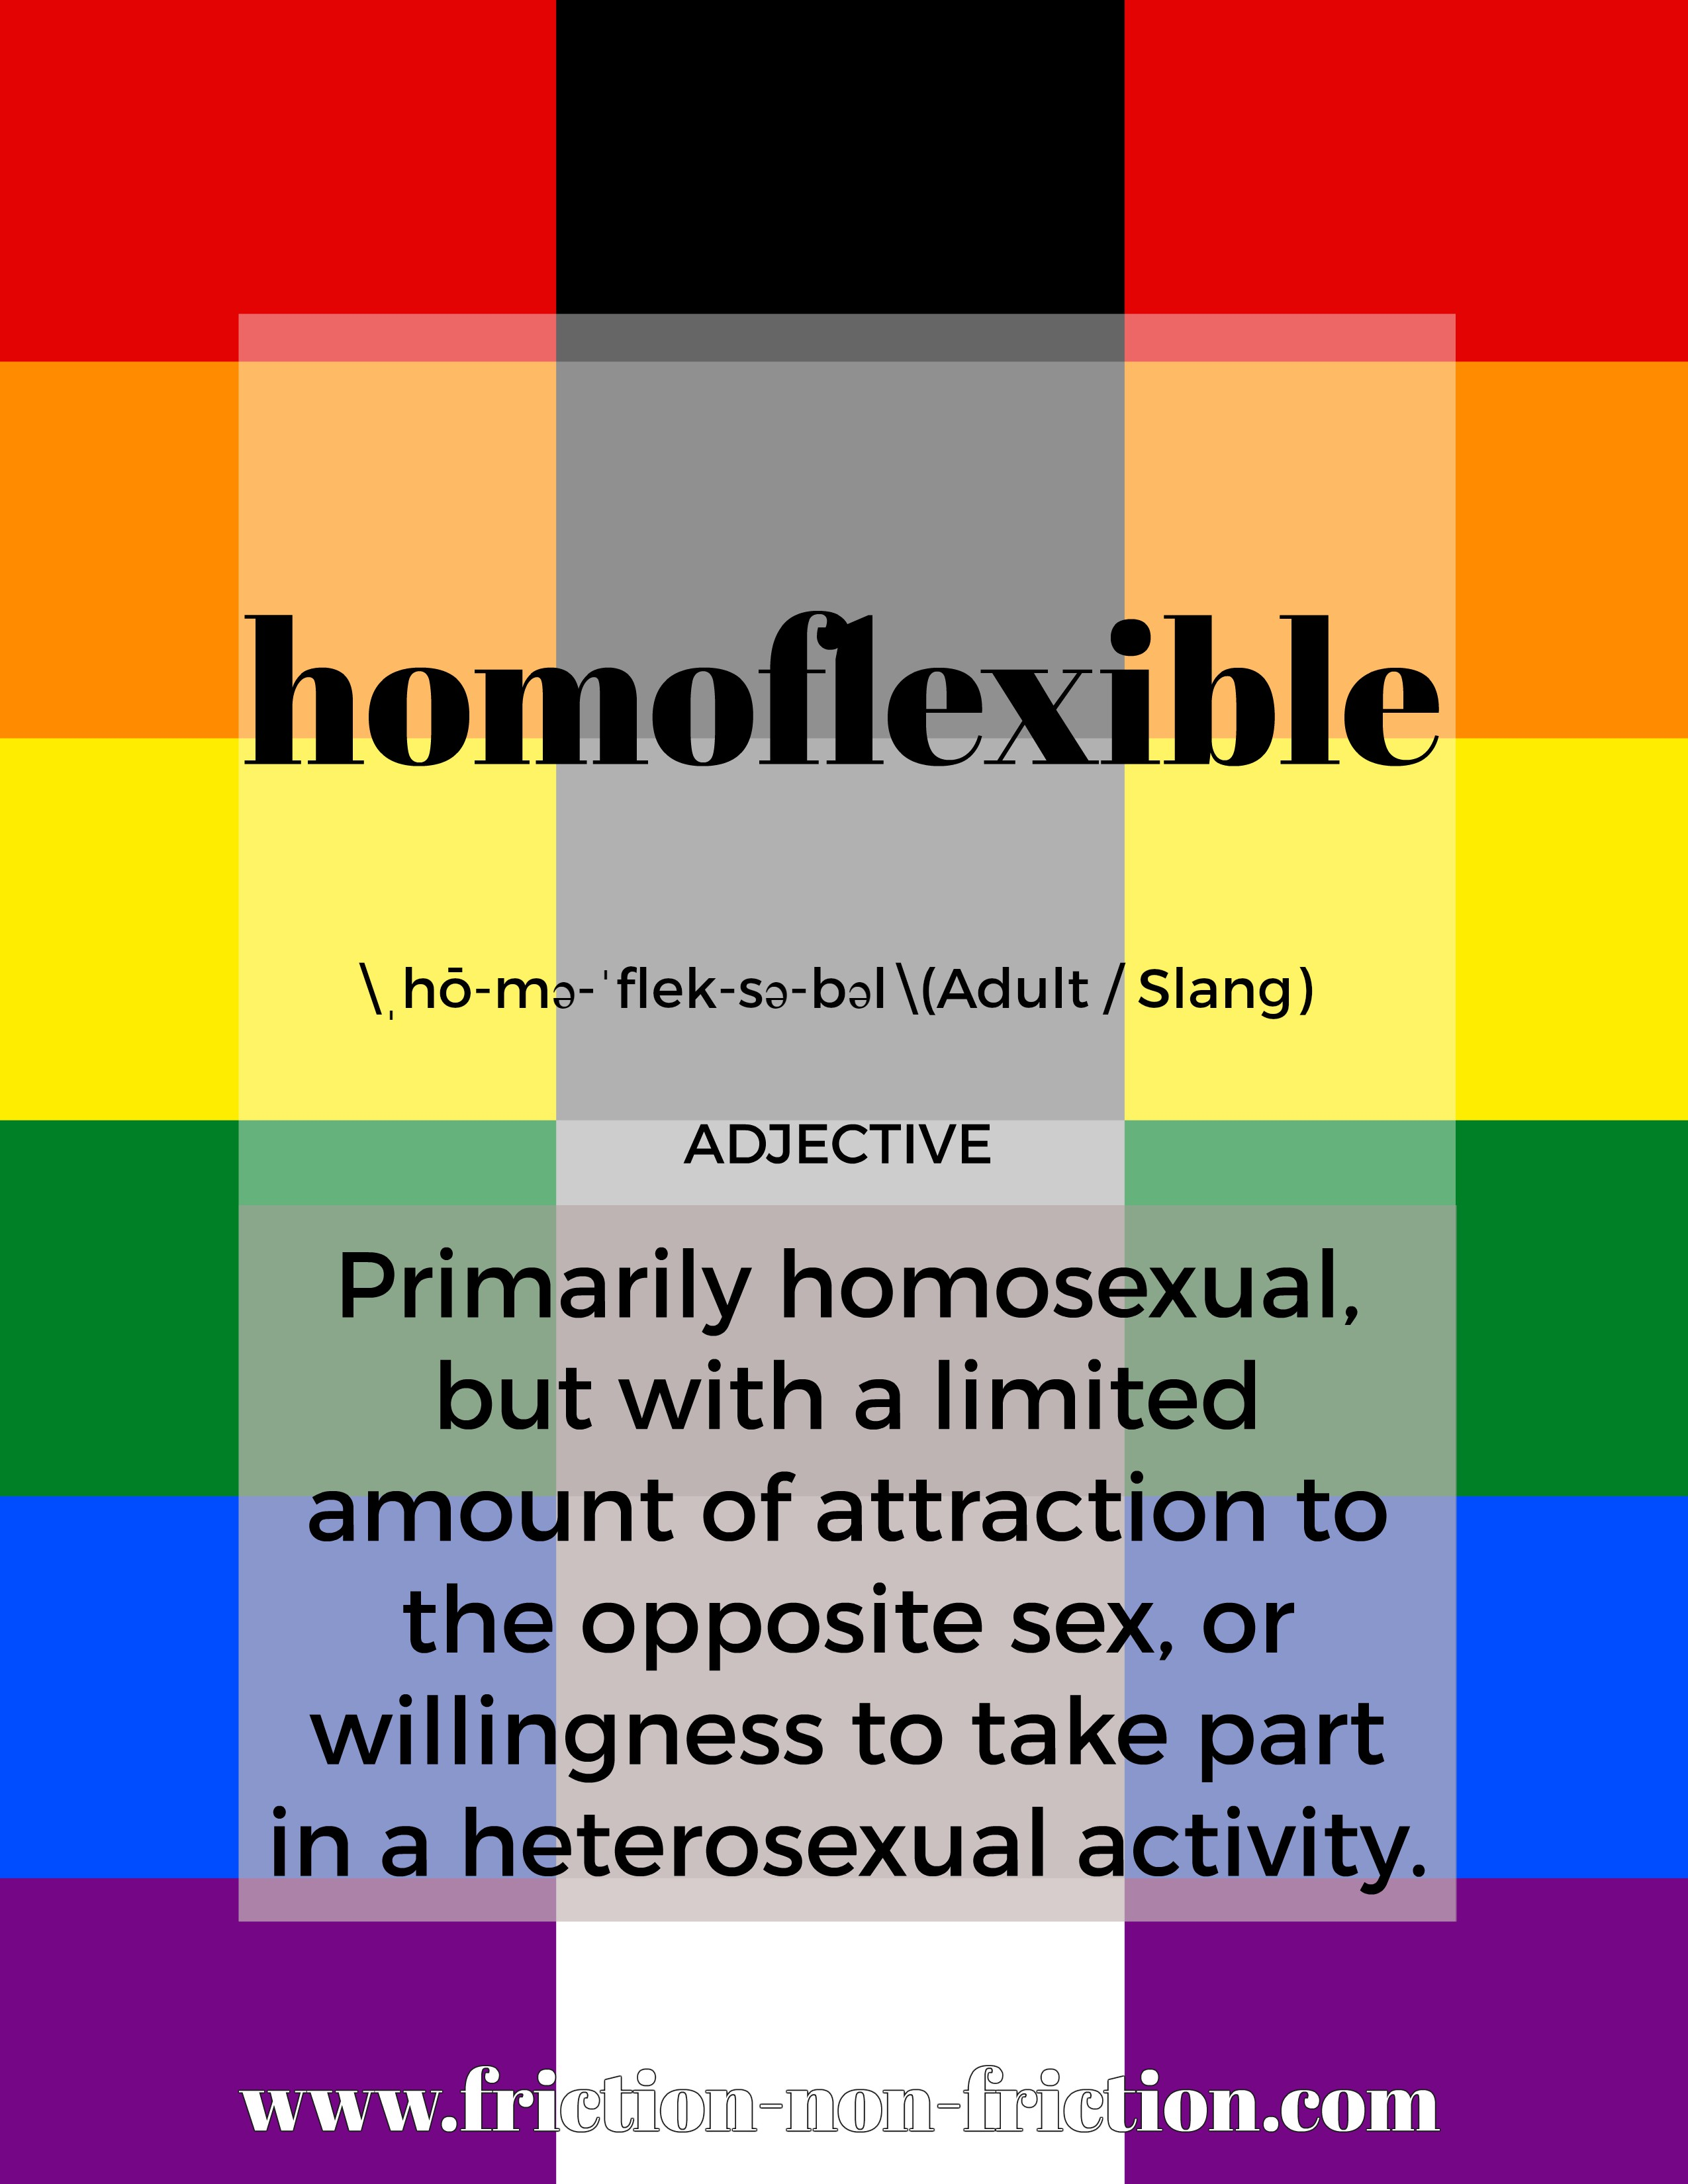 Homoflexible -- another great FRICTIONARY definition from Friction|non|Friction